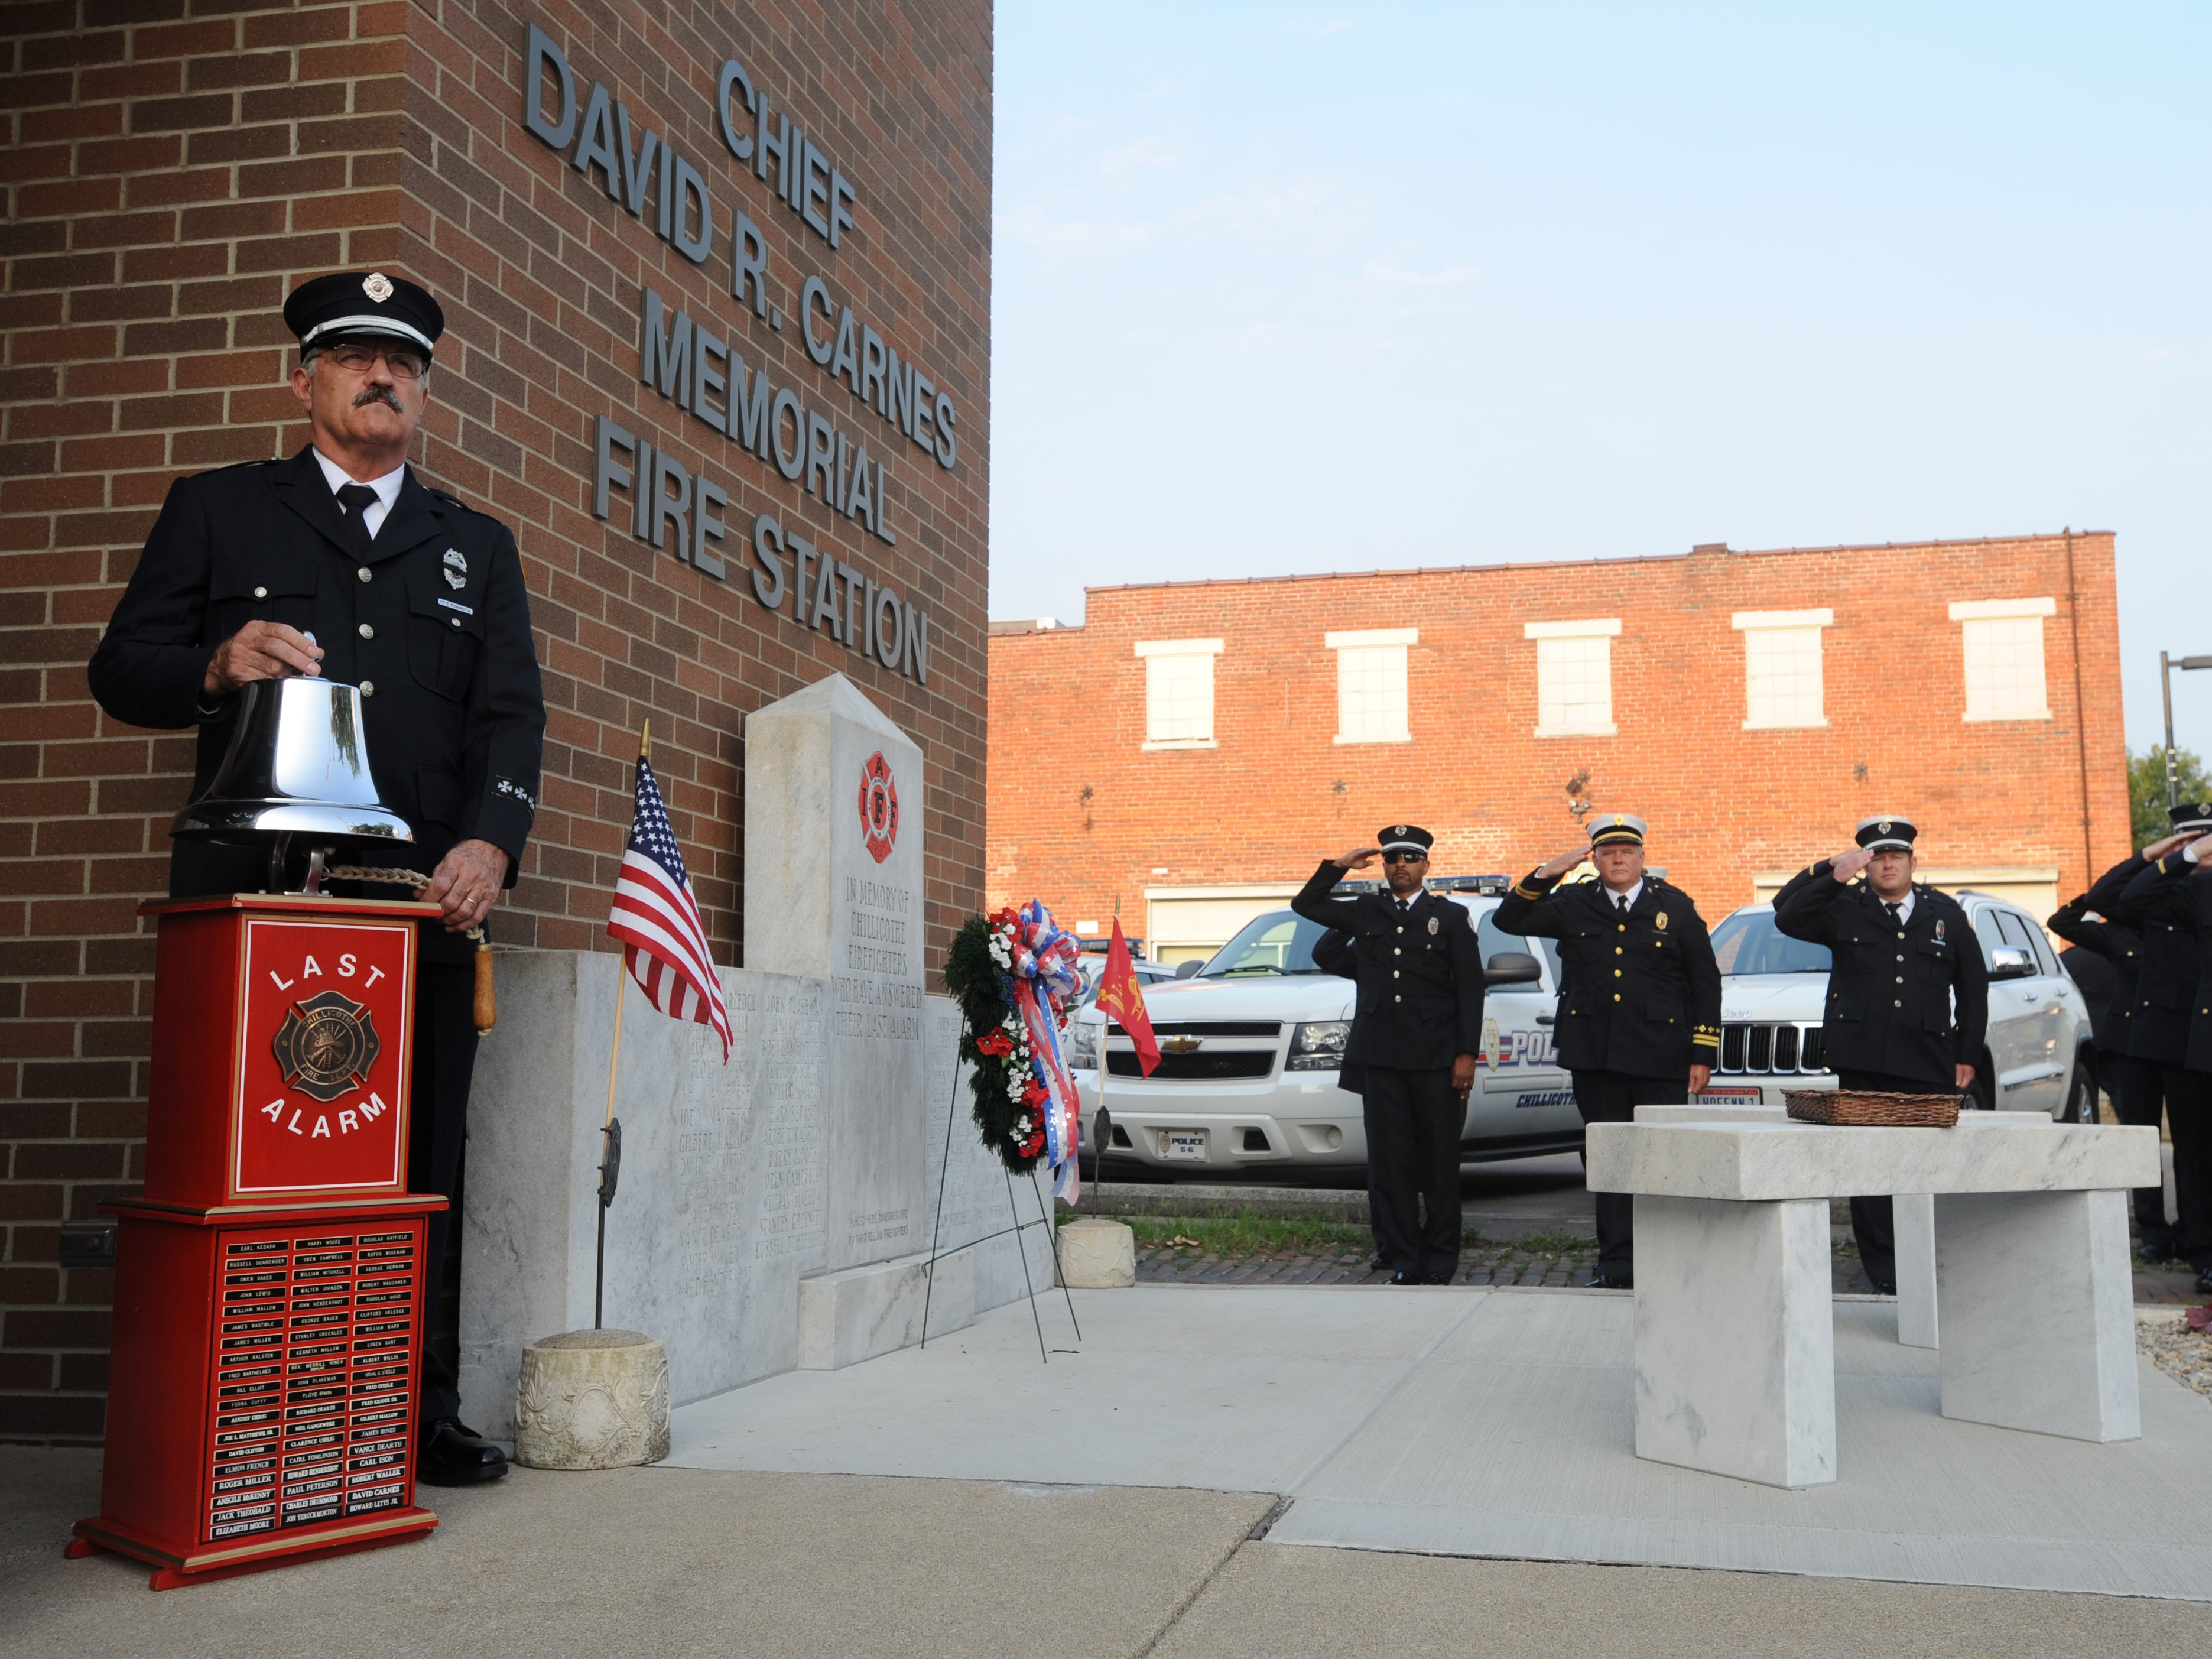 Retired firefighter Pete Pennington rings the 3-3-3 signal during the Chillicothe Fire Department's Firefighters' Memorial Service at Fire Station 1 on Water Street in September 2013. The 3-3-3, which historically signaled firefighters to return to station, was rung in honor of deceased firefighters.